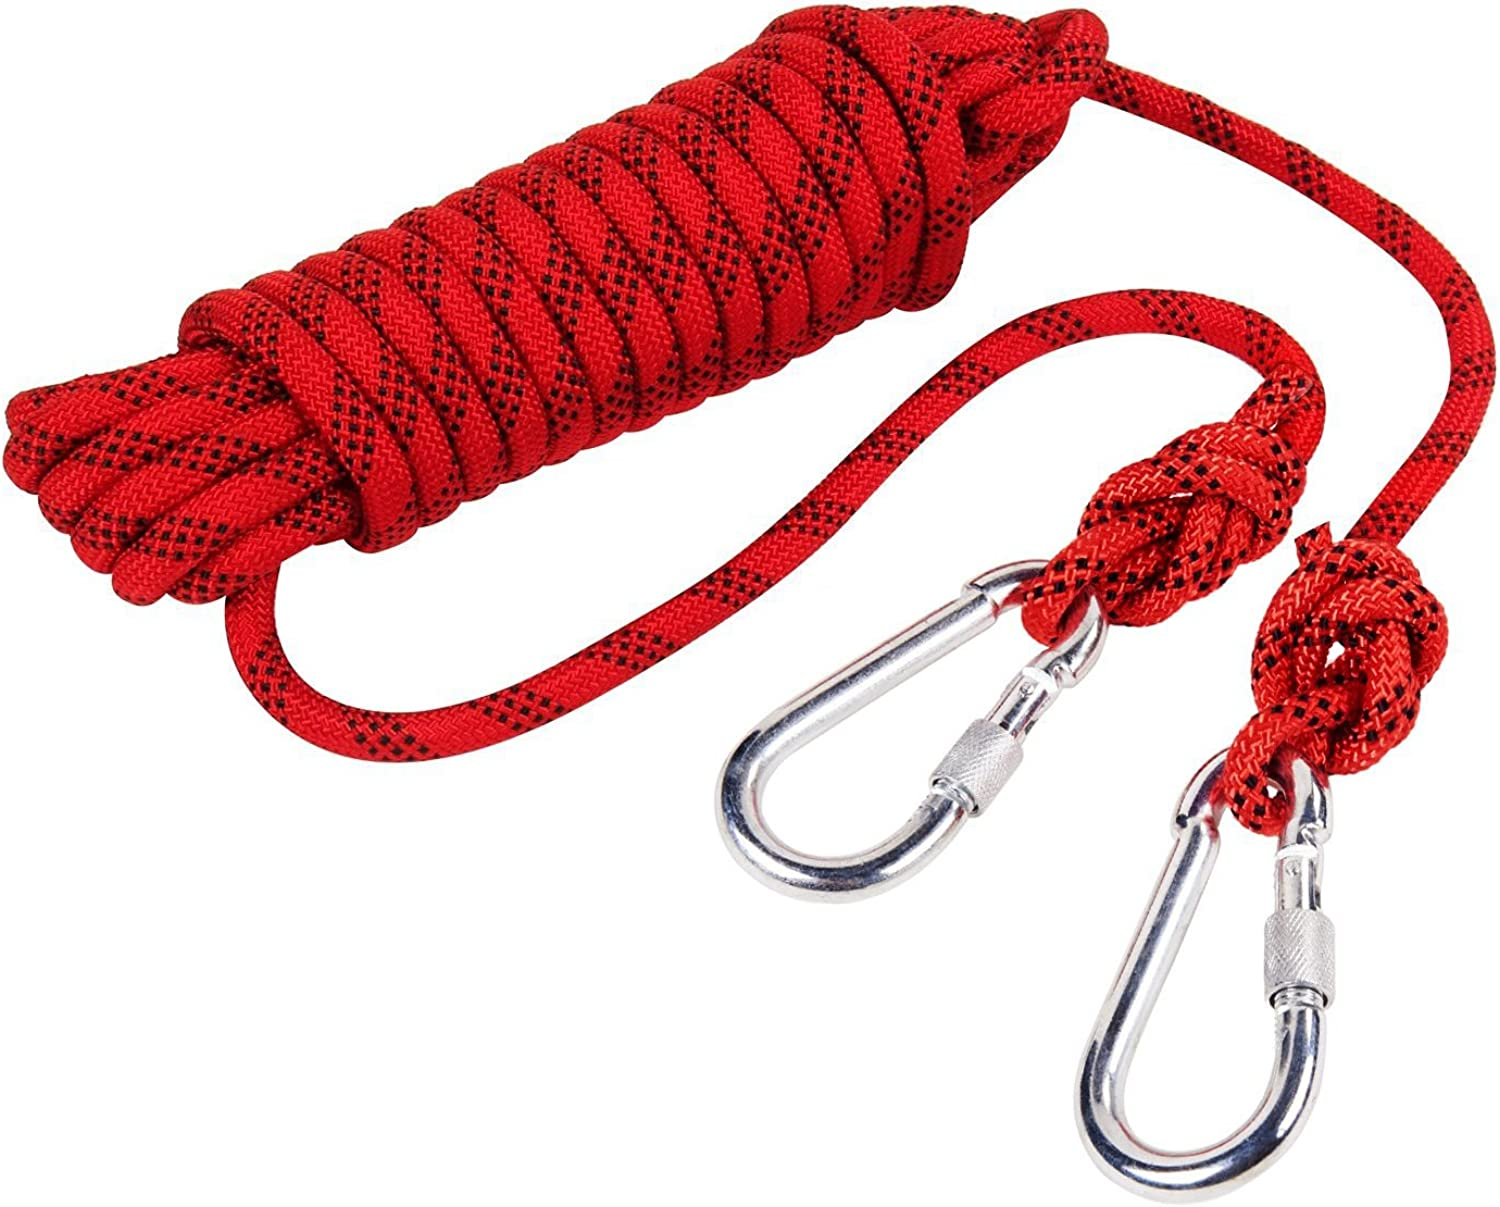 Outdoor Rock Climbing Safety Rope 10M(32ft) 15M(49ft) 20M(64ft) 30M (98ft) with Hooks, Diameter 8mm(0.03ft), 9KN(900kg), for Outdoor Escape Rope, Camping Hiking Rope, Fire Rescue Parachute